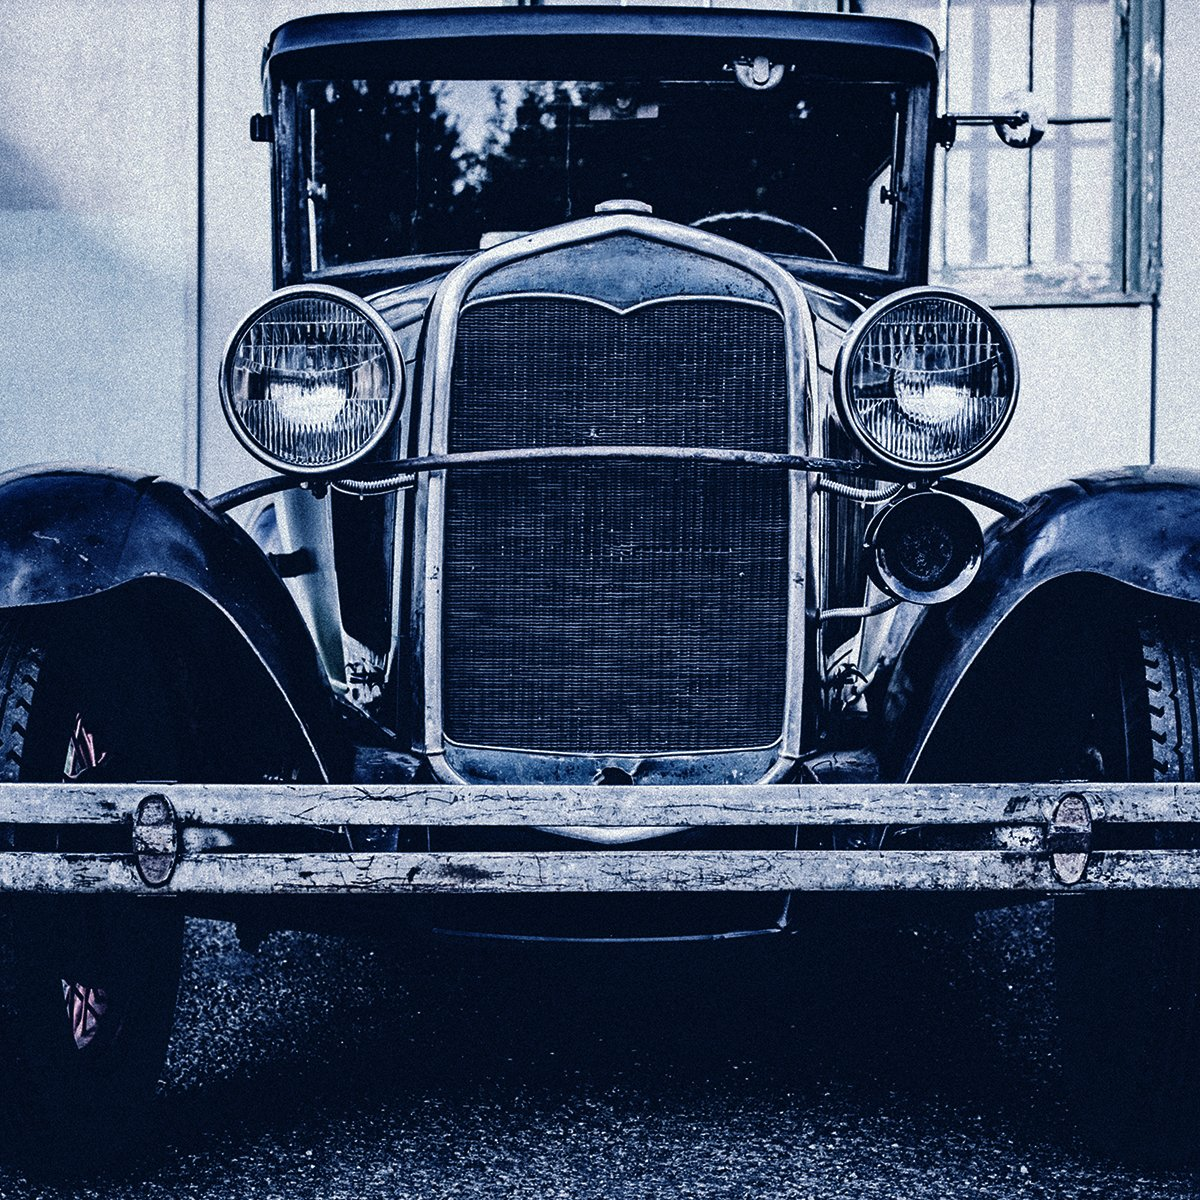 "Farmers sold its first auto policy in 1928. It covered a used 1925 Cadillac Phaeton owned by Charles Briscoe. He kept his policy for more than 50 years until he gave up driving. Why Farmers? ""I just exercised good judgment,"" he said. Over 50 years? I'd say that's great judgment. pic.twitter.com/uo6JhT6lEq"